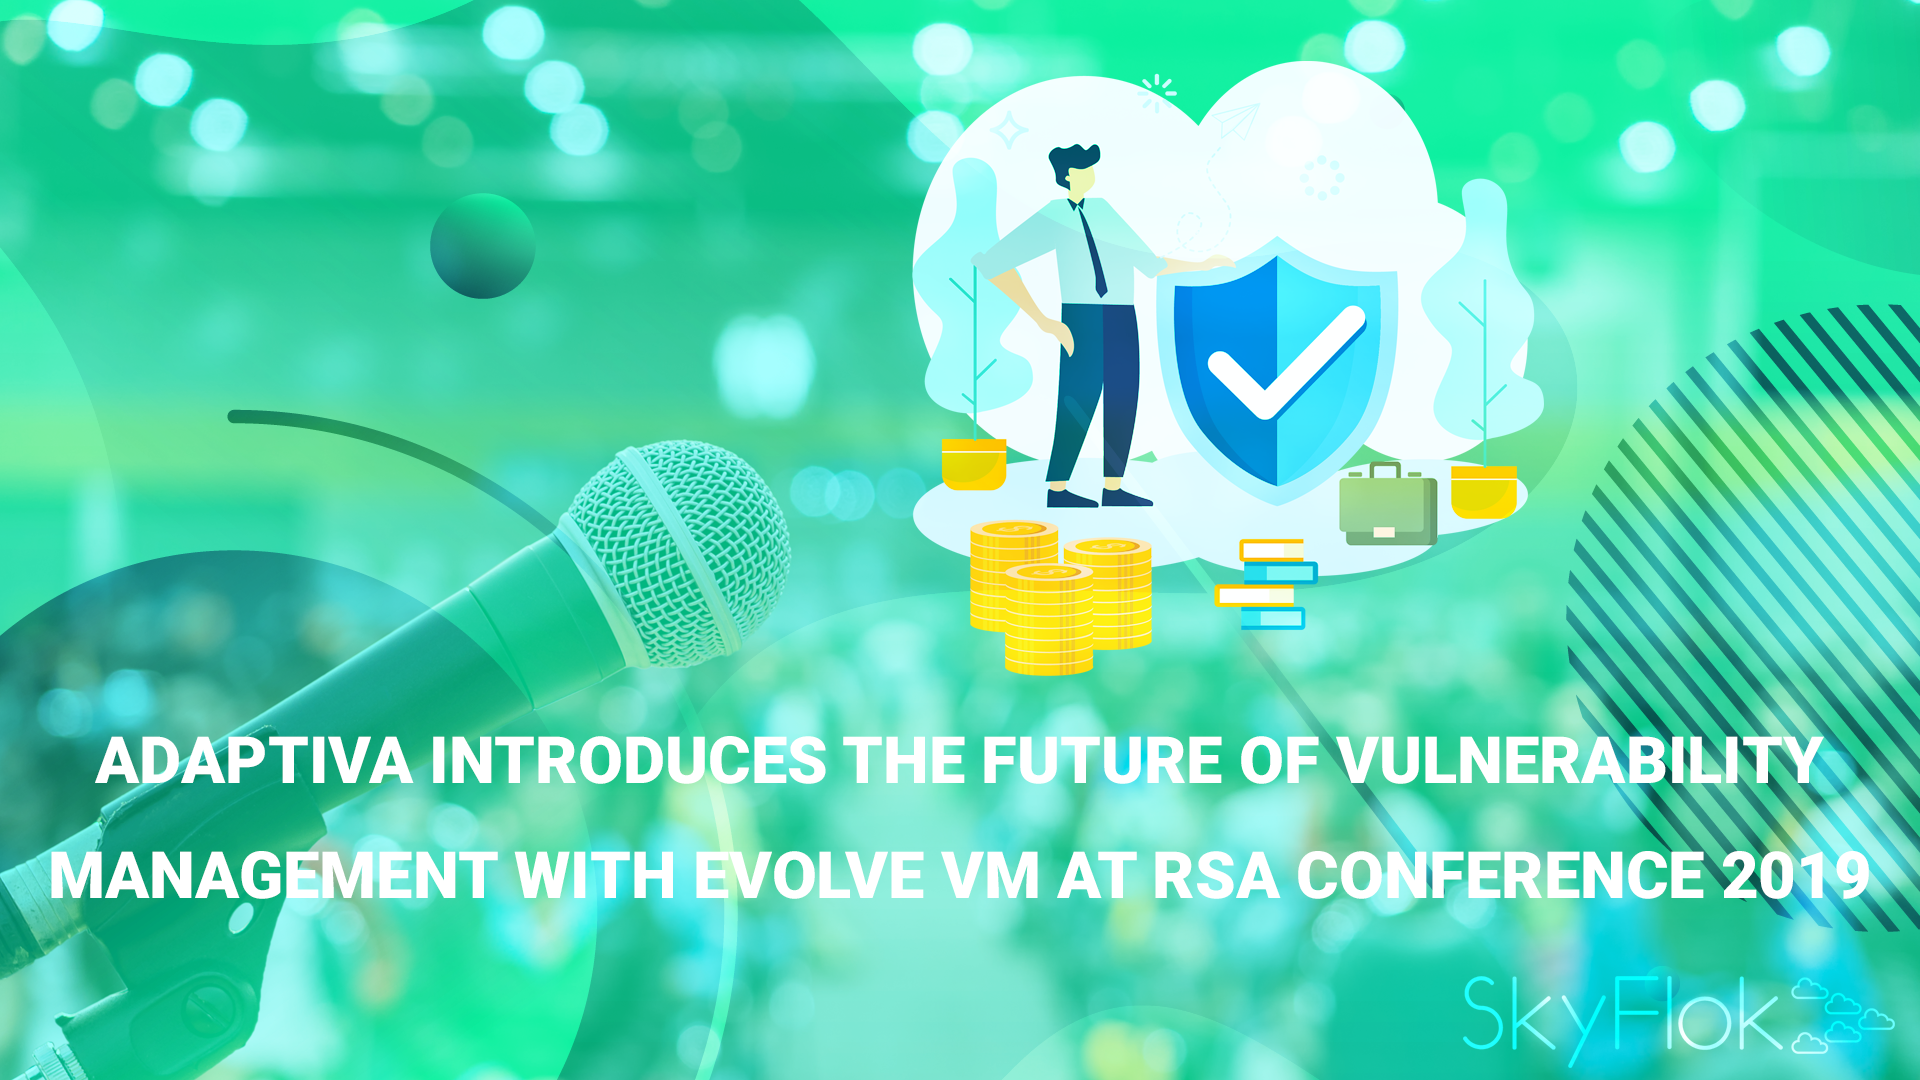 Adaptiva Introduces the Future of Vulnerability Management with Evolve VM at RSA Conference 2019